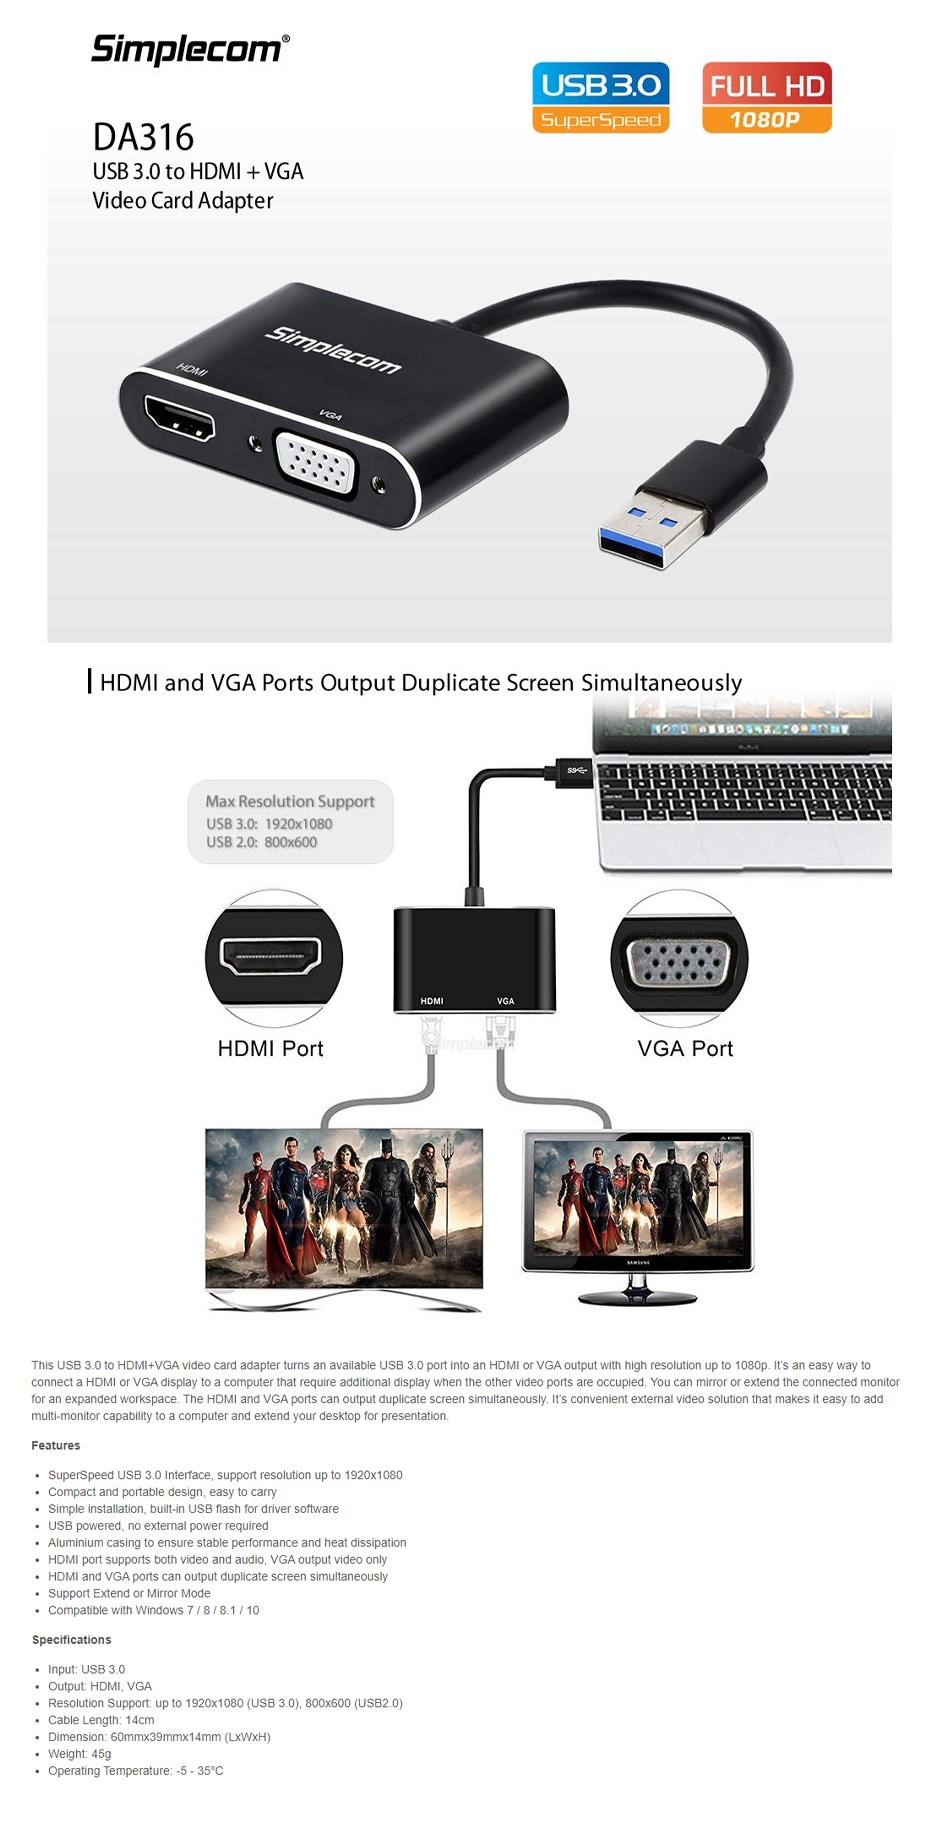 Simplecom DA316 USB 3.0 to HDMI + VGA Adapter - Overview 1